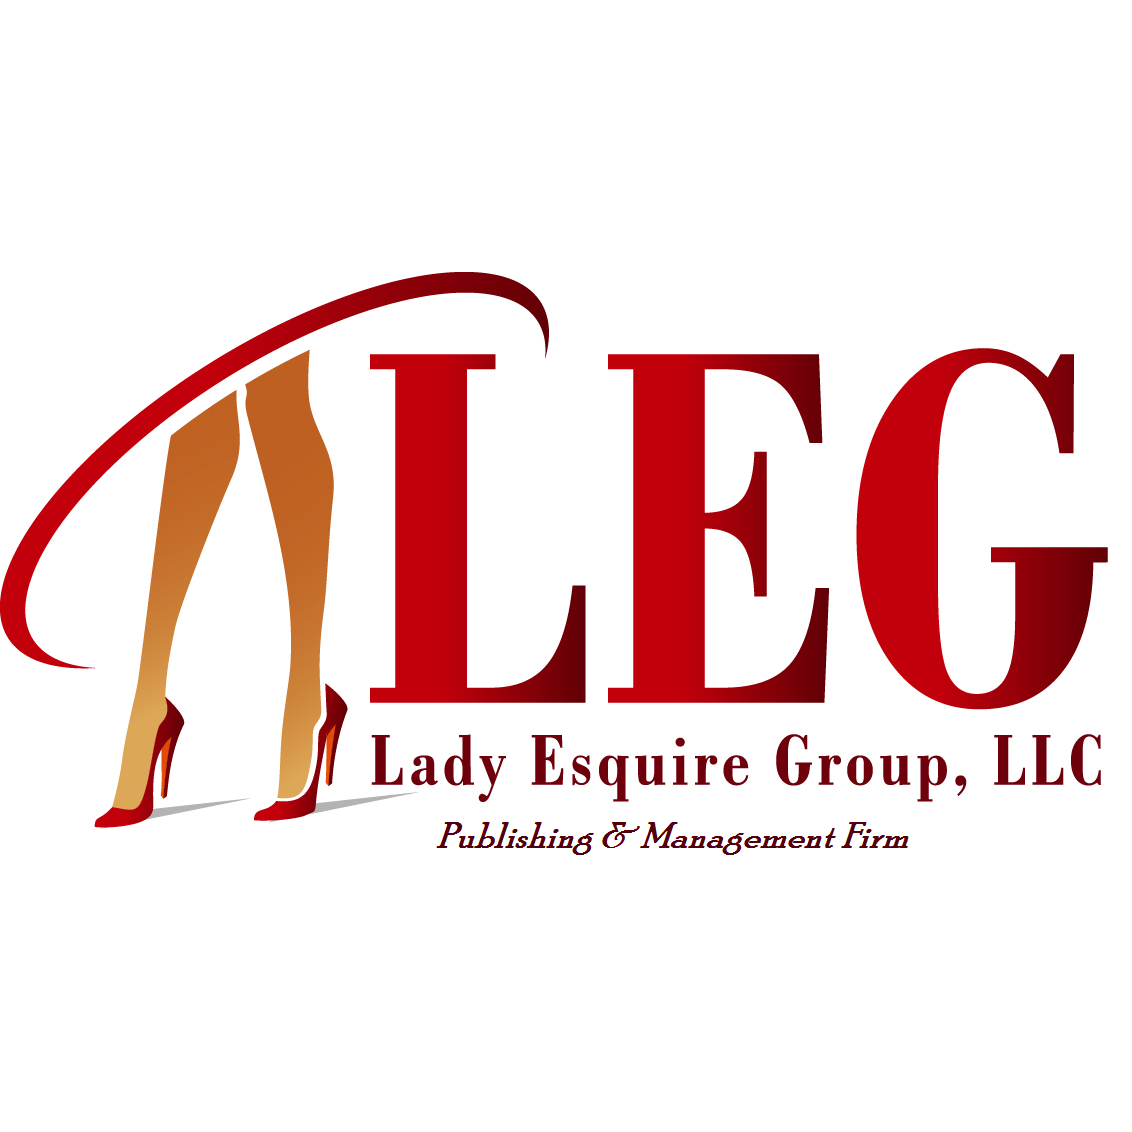 lady esquire group llc/